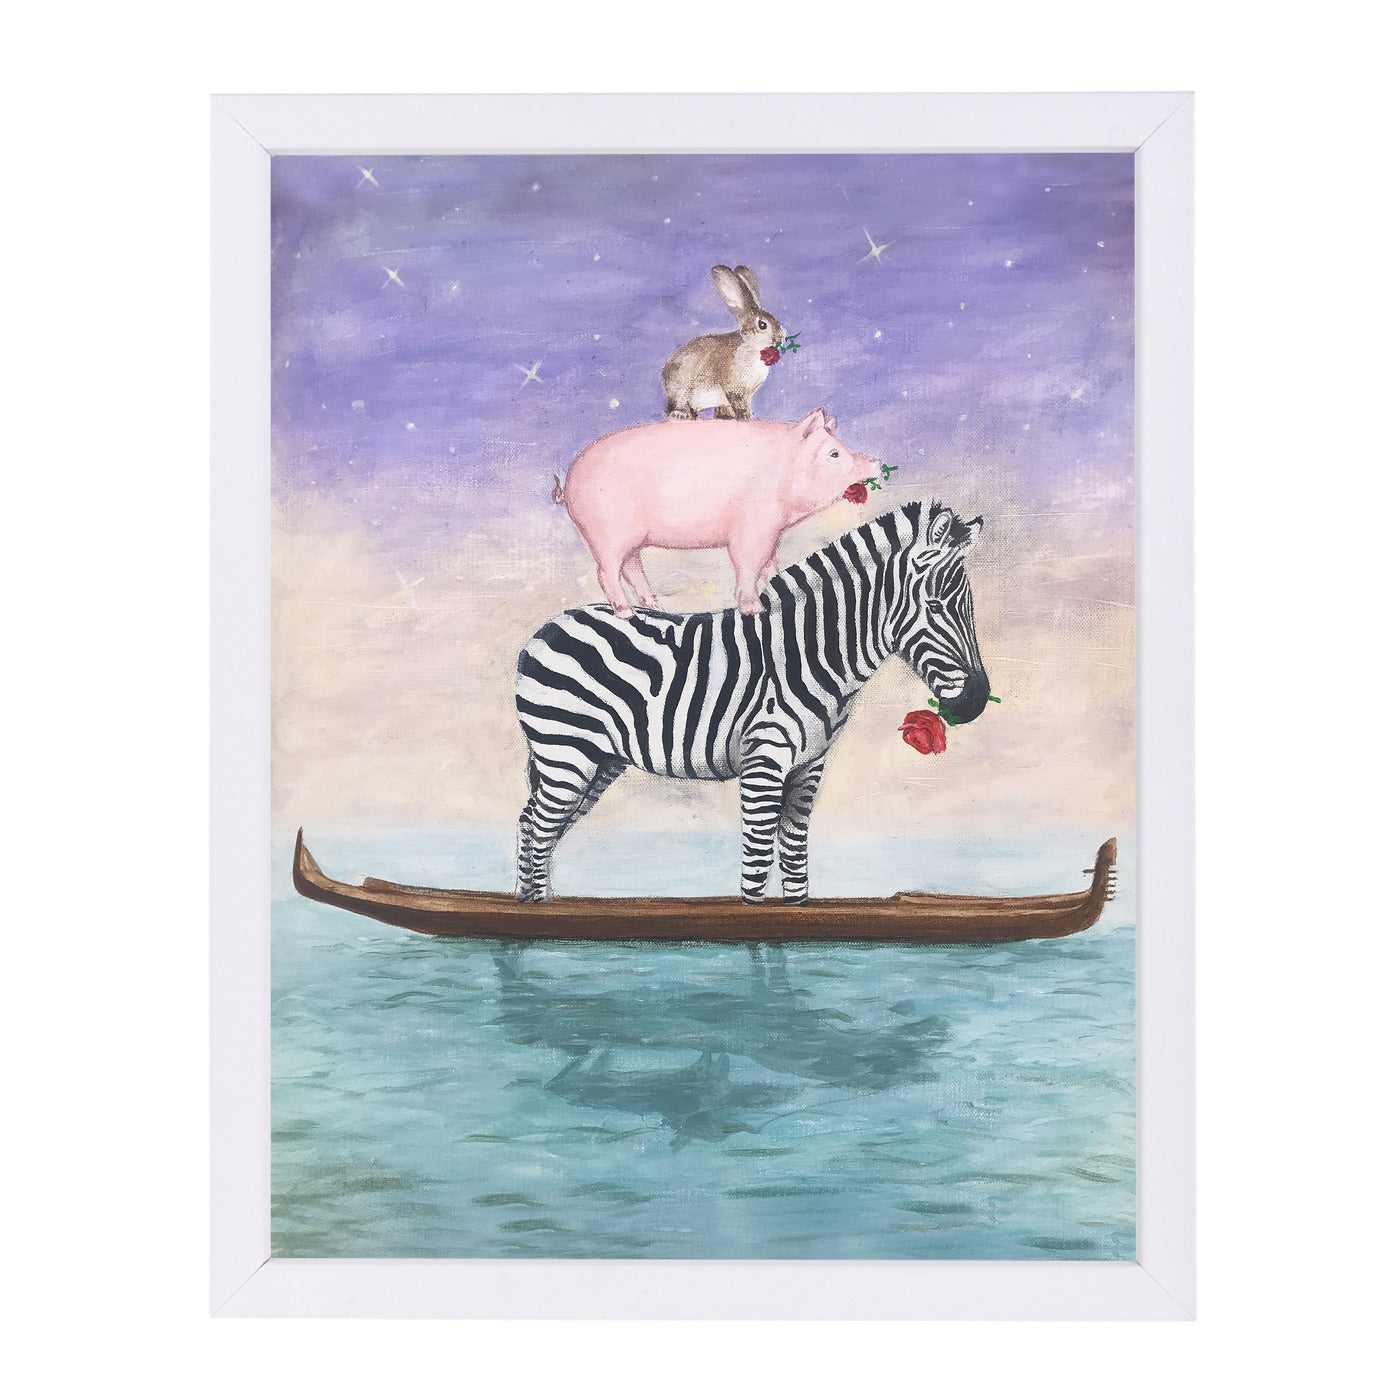 Noah Forgot Some Animals By Coco De Paris - White Framed Print - Wall Art - Americanflat